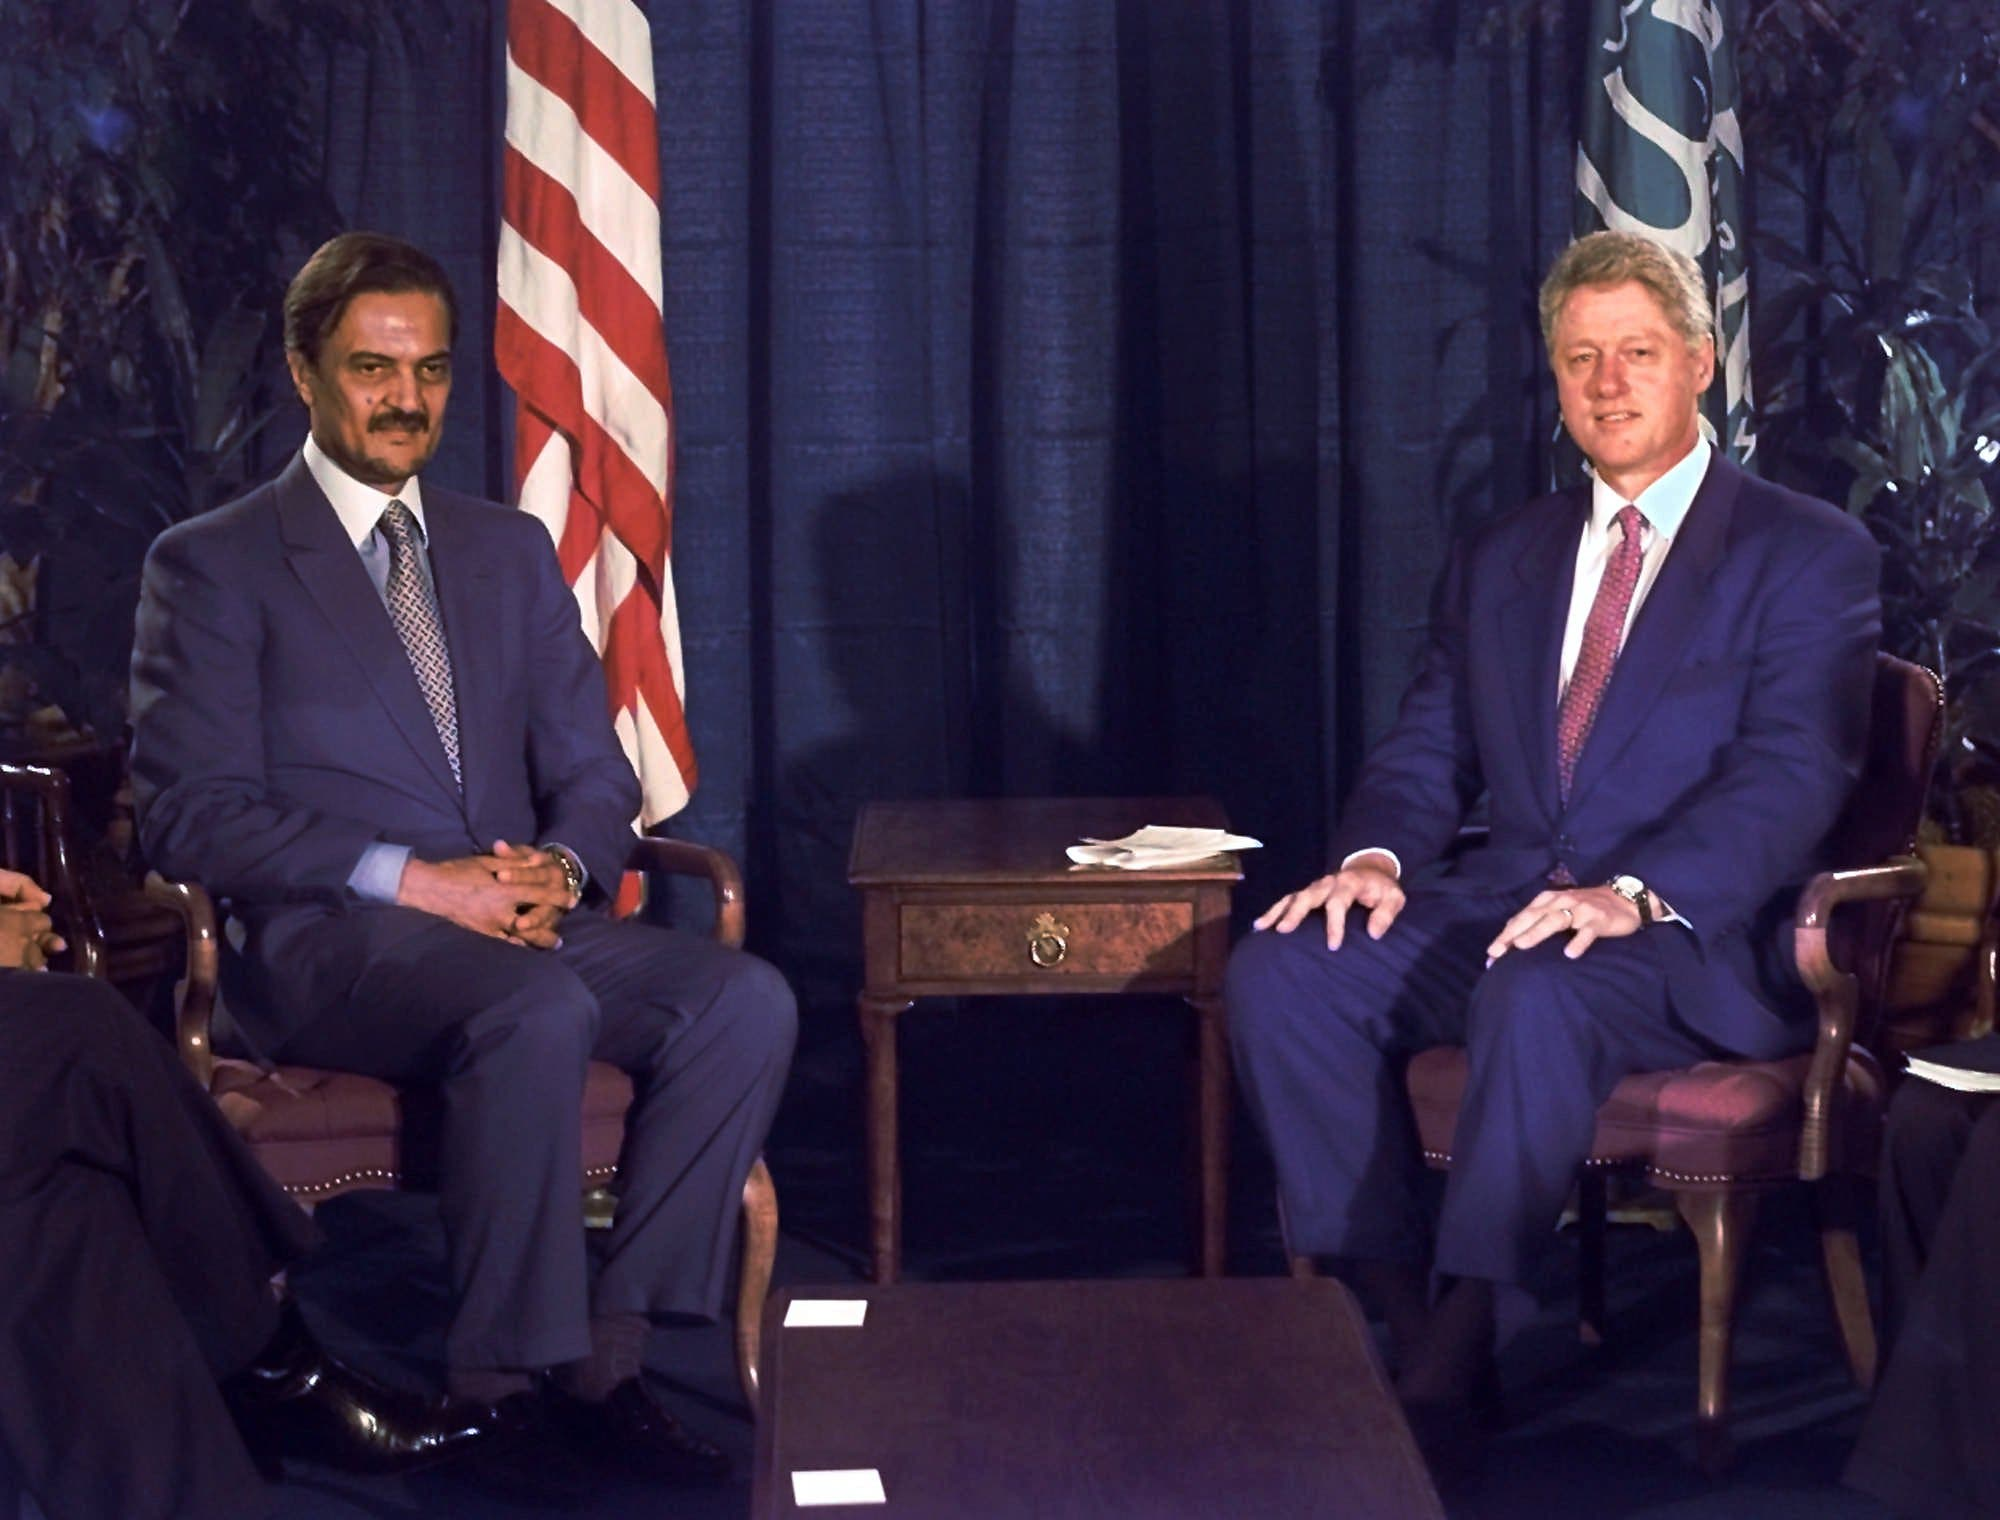 President Clinton poses for pictures with Saudi Foreign Minister Prince Saud Al-Faisal before a meeting at the United Nations Tuesday, Sept. 24, 1996. (AP Photo/Greg Gibson)